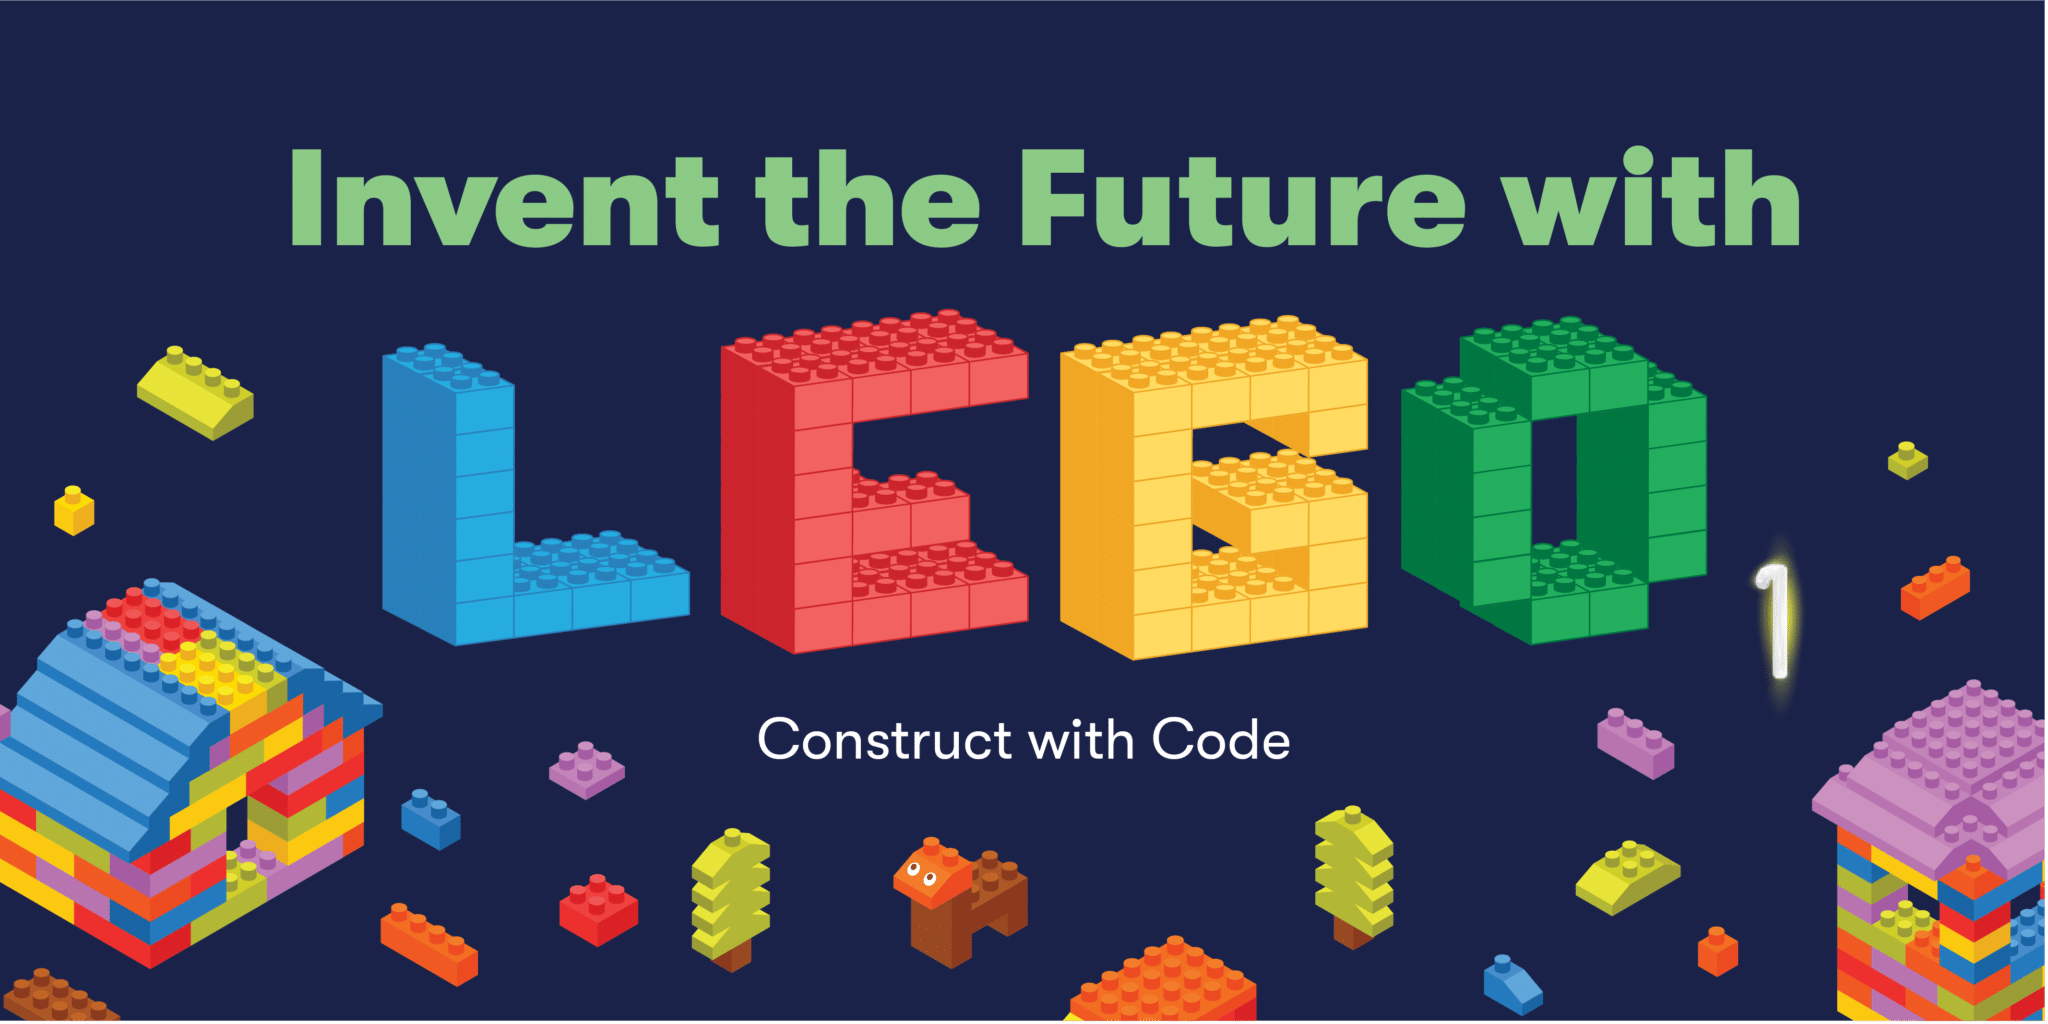 Invent the Future with Lego - Construct with Code